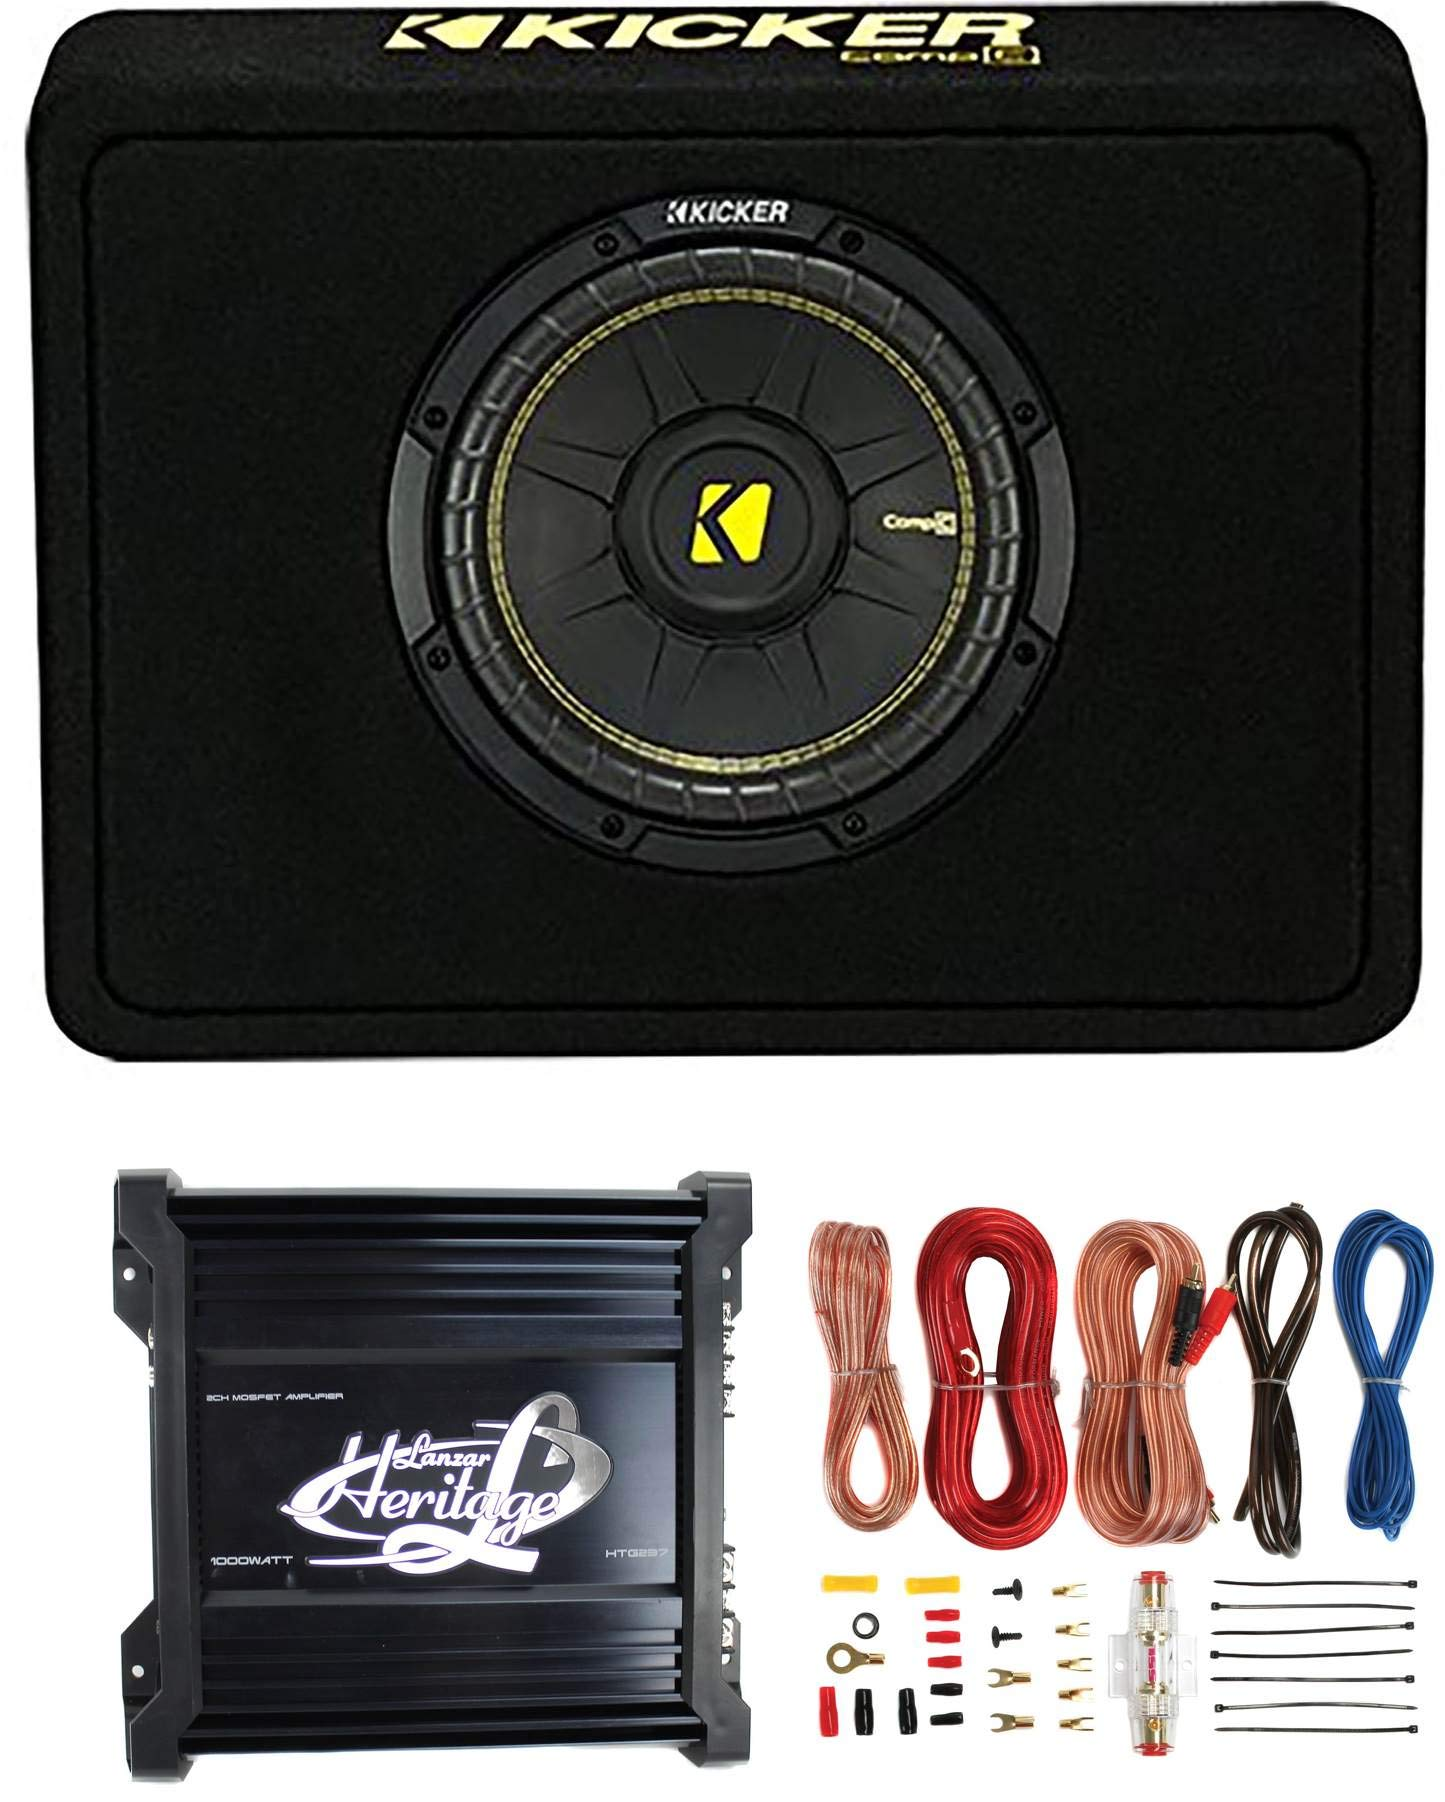 """Kicker 40TCWS104 10"""" 600W 4 Ohm Complete Car Subwoofer Bass Package with Loaded Sub Enclosure, Lanzar 1000W Monoblock Amplifier, & 8 Gauge Wiring Kit"""